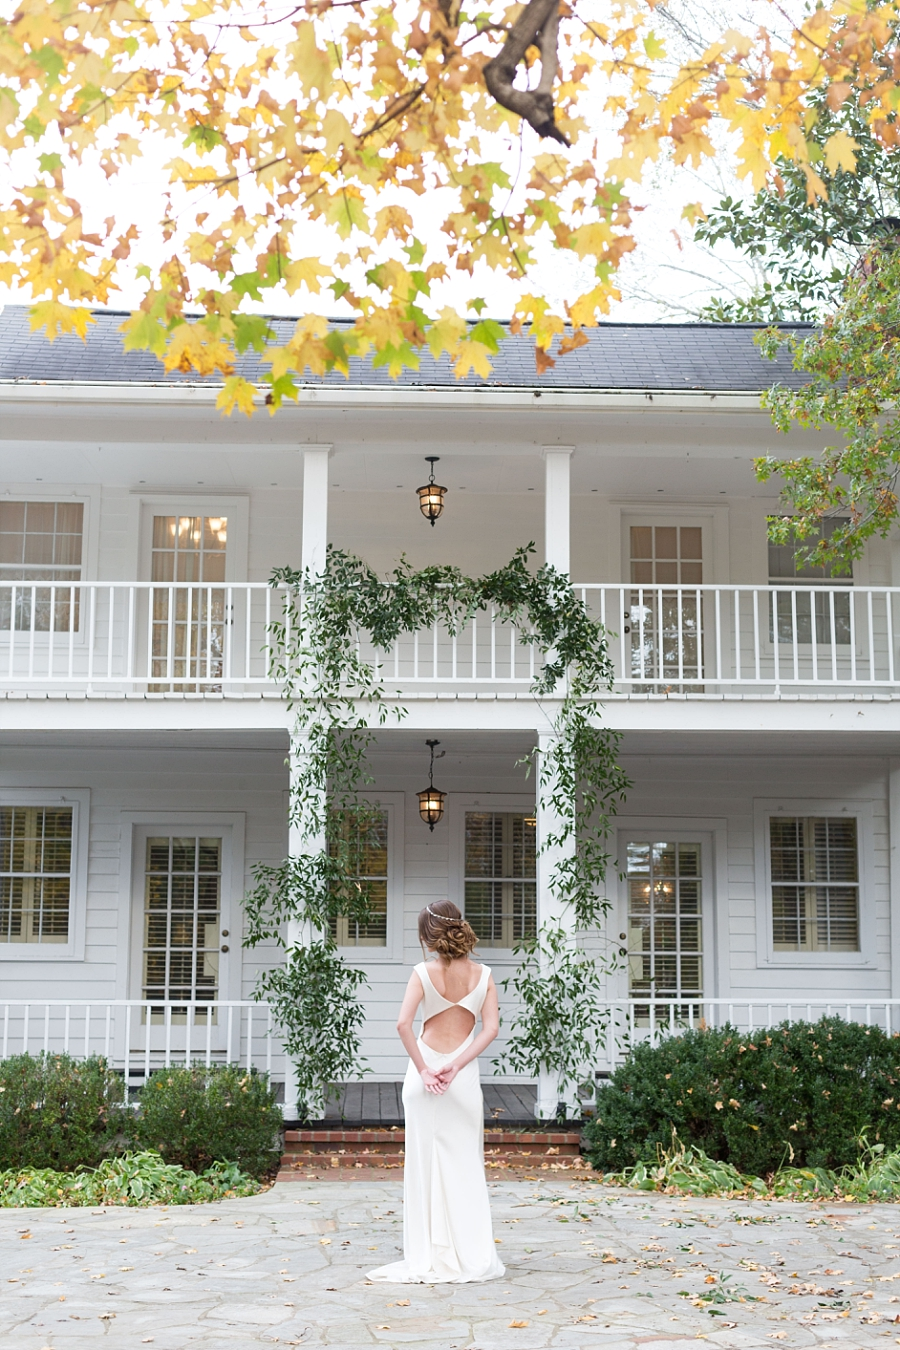 Stacy-Anderson-Photography-Nashville-Houston-Destination-Wedding-Photographer_0024.jpg